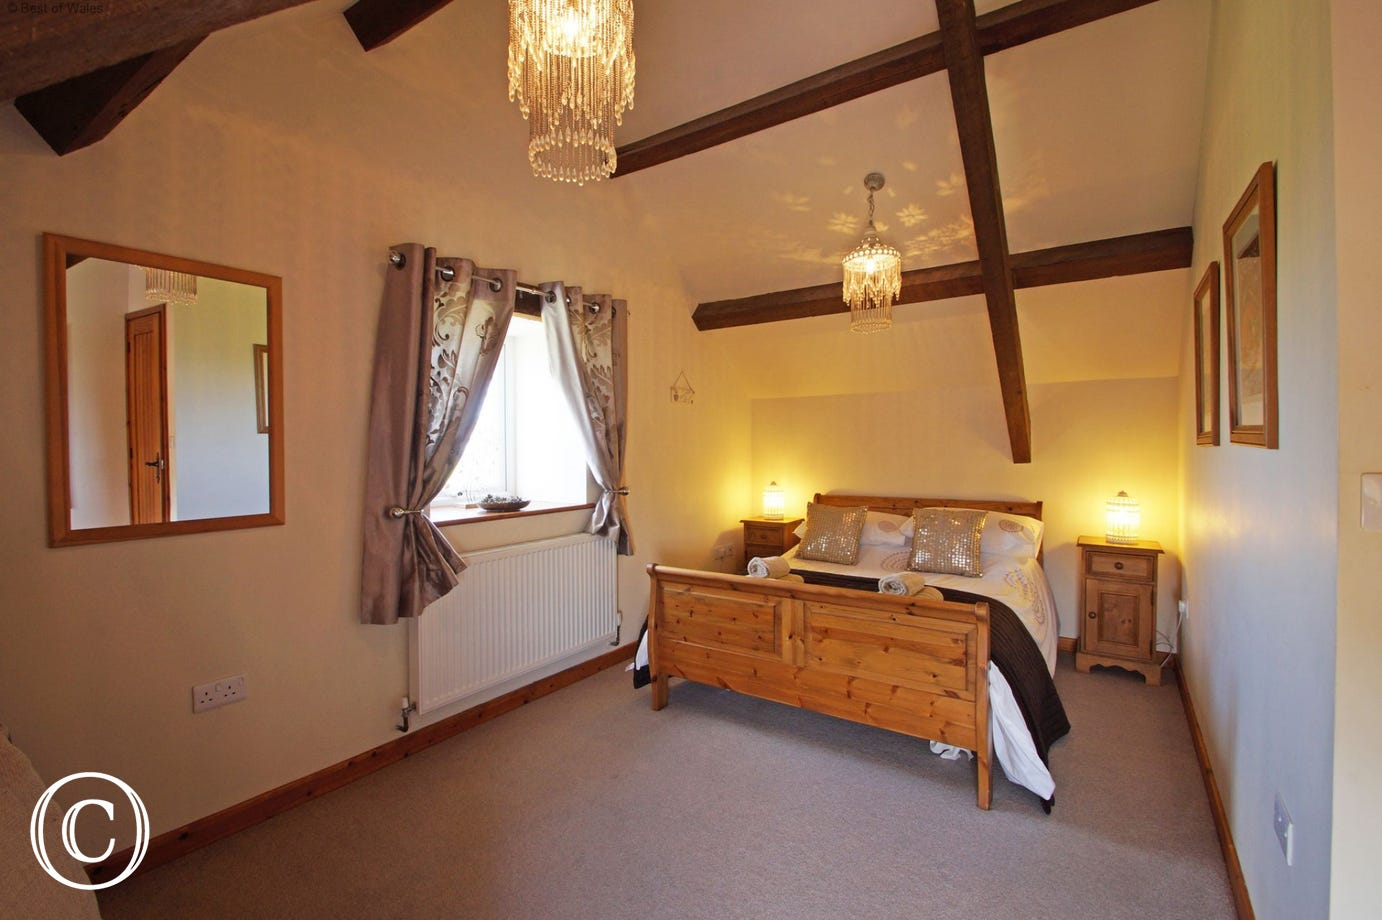 Bedroom 2 - Upstairs double room with stunning views